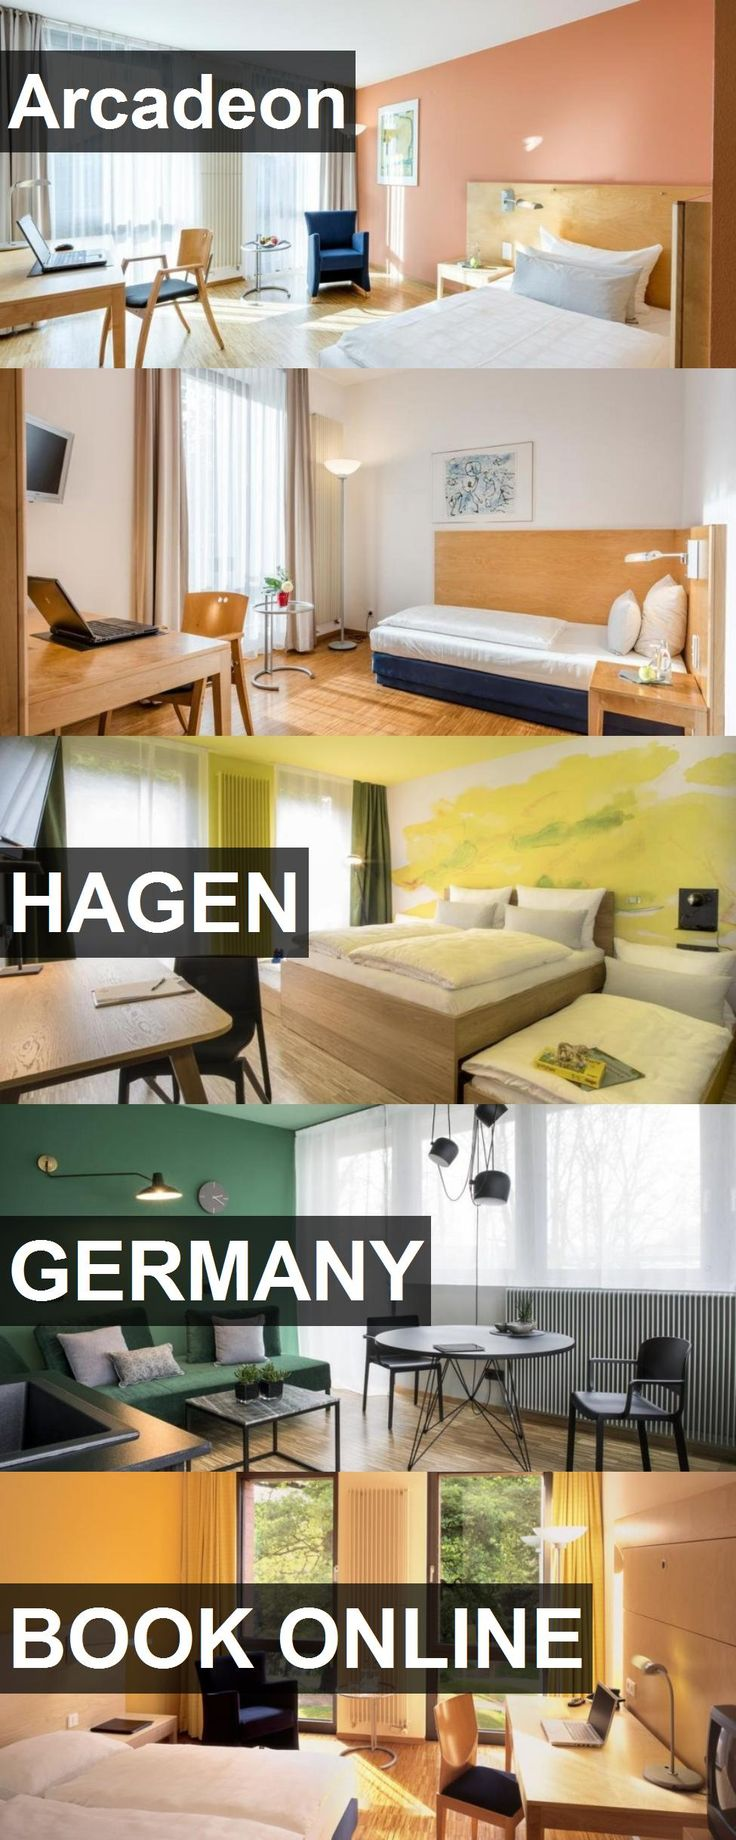 Hotel Arcadeon in Hagen, Germany. For more information, photos, reviews and best prices please follow the link. #Germany #Hagen #travel #vacation #hotel